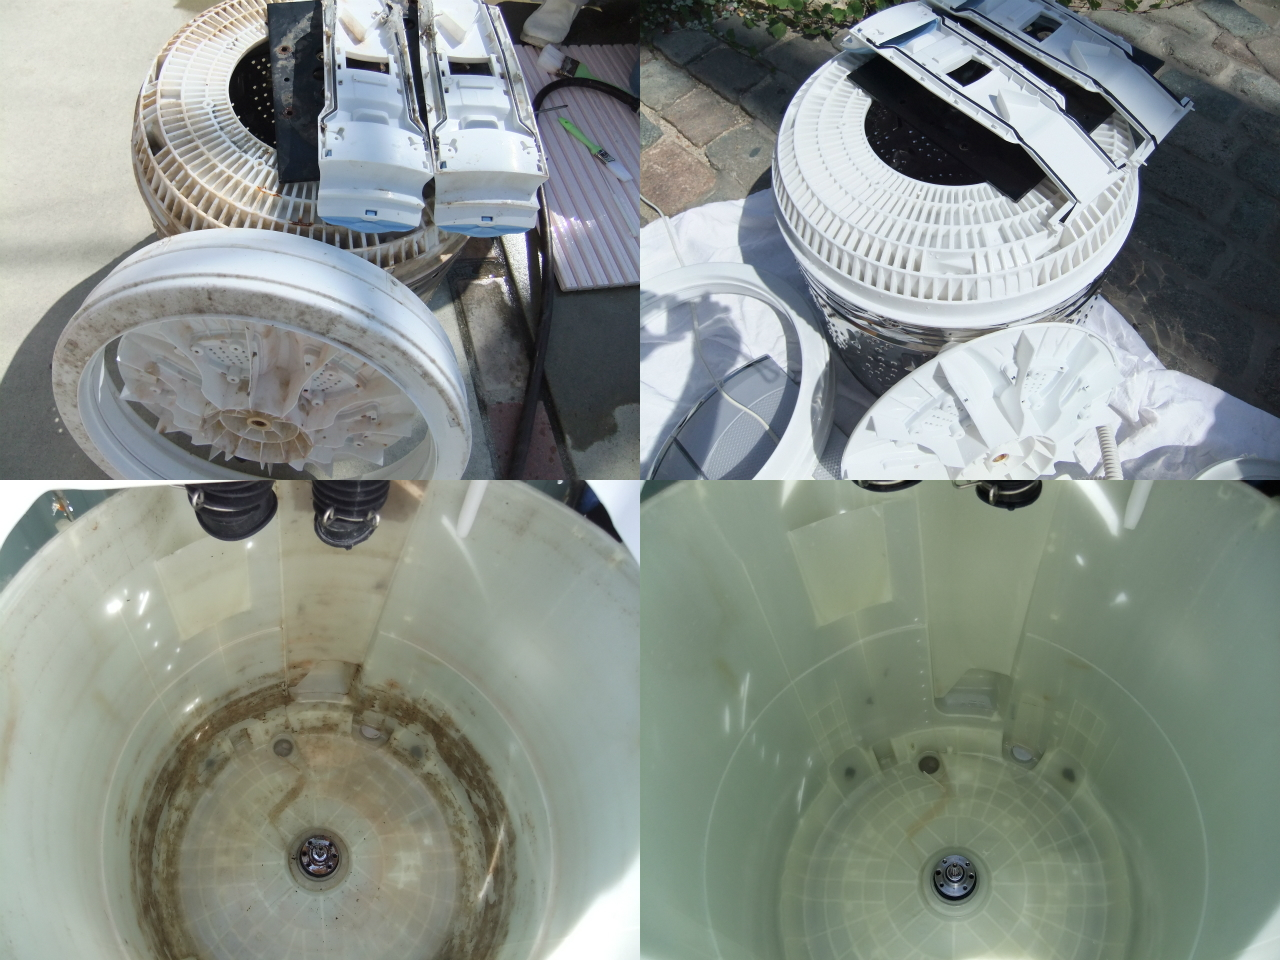 http://ajras.net/images/110927-washmachine2.jpg